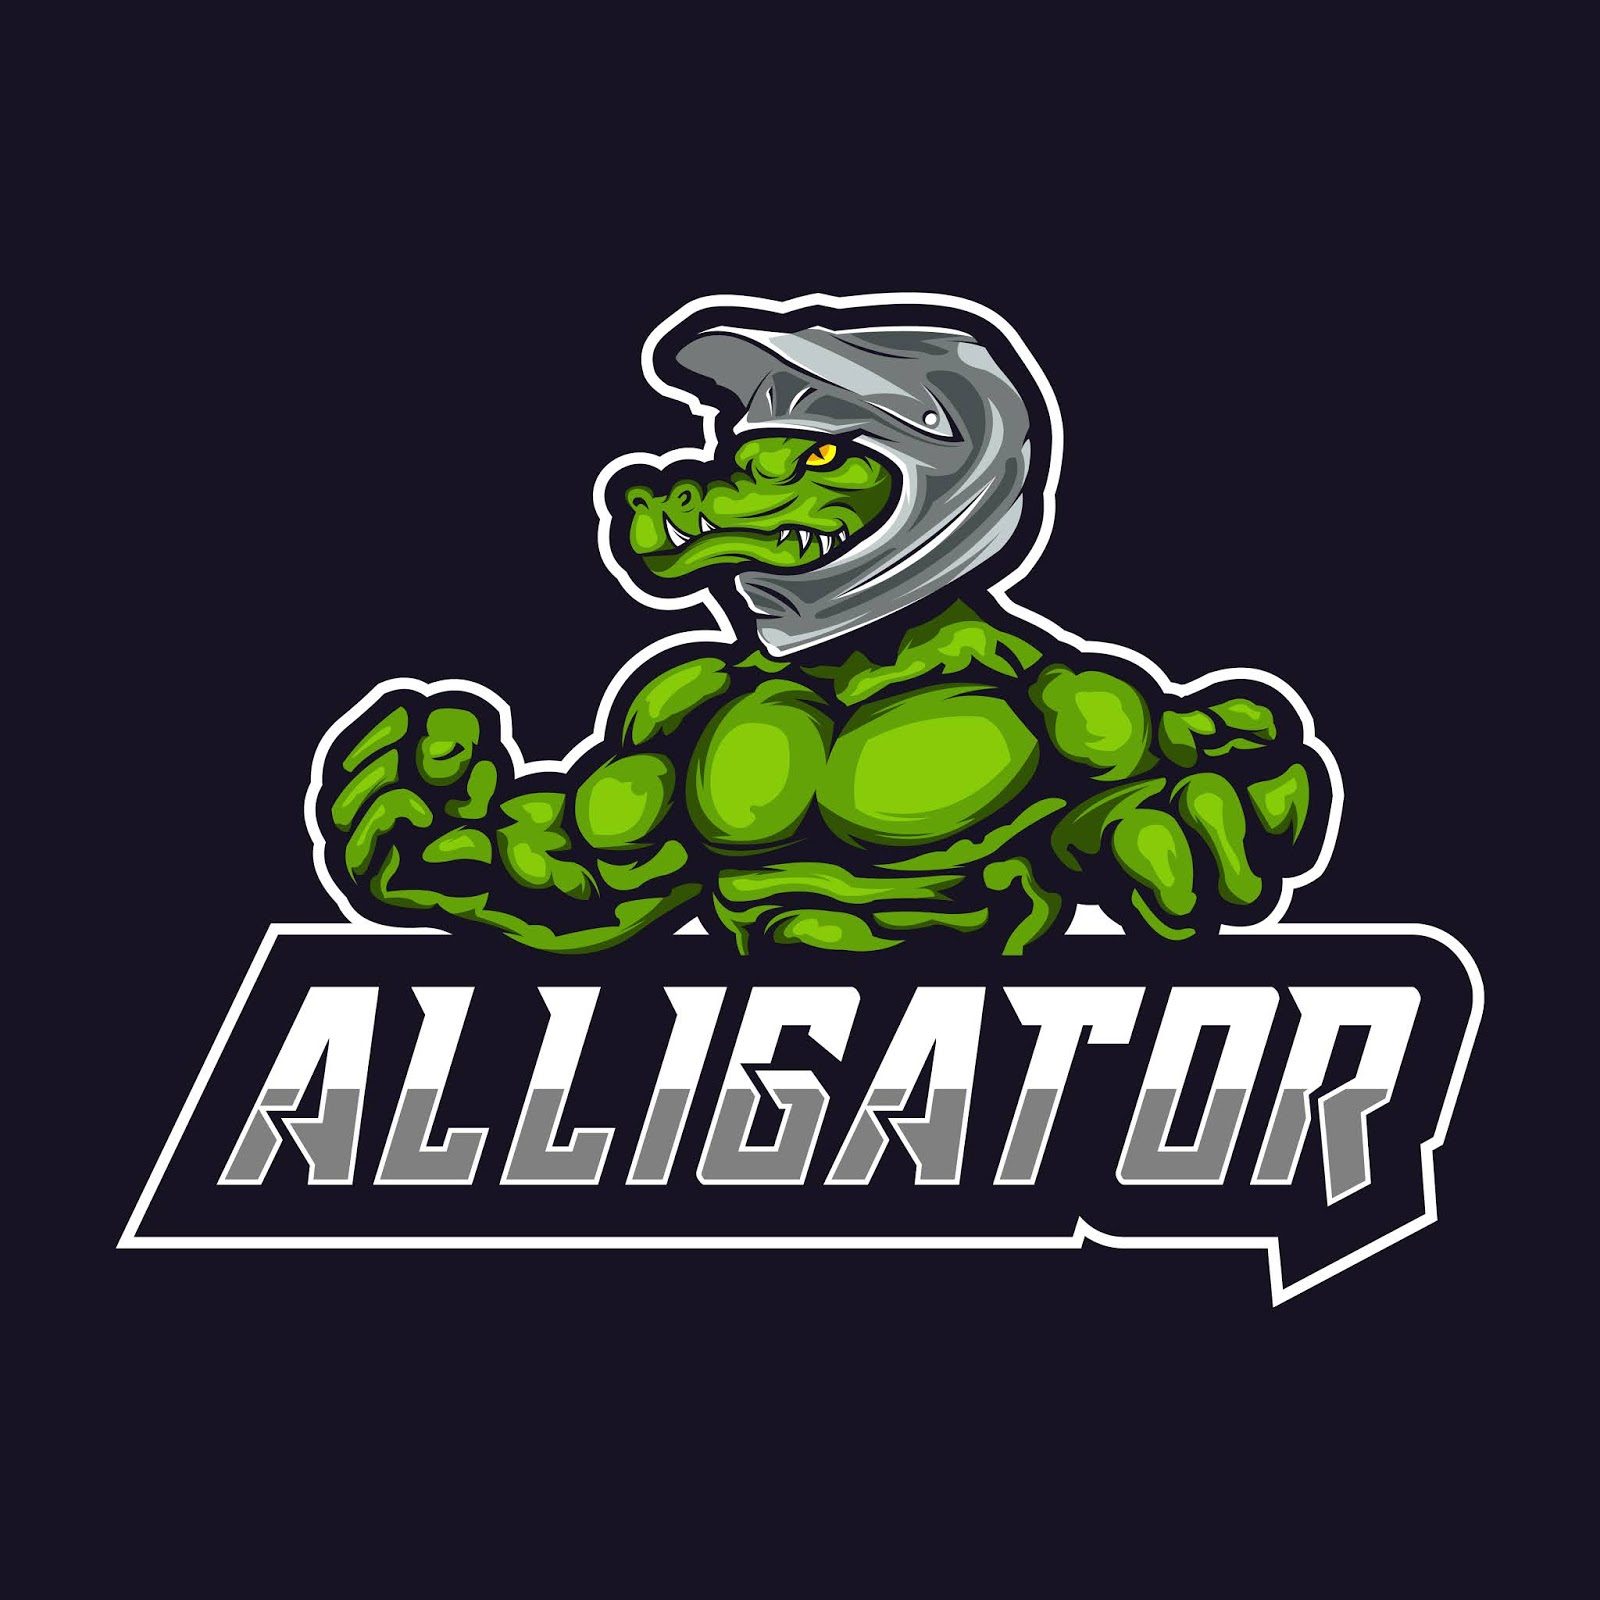 Alligator Mascot Logo Free Download Vector CDR, AI, EPS and PNG Formats